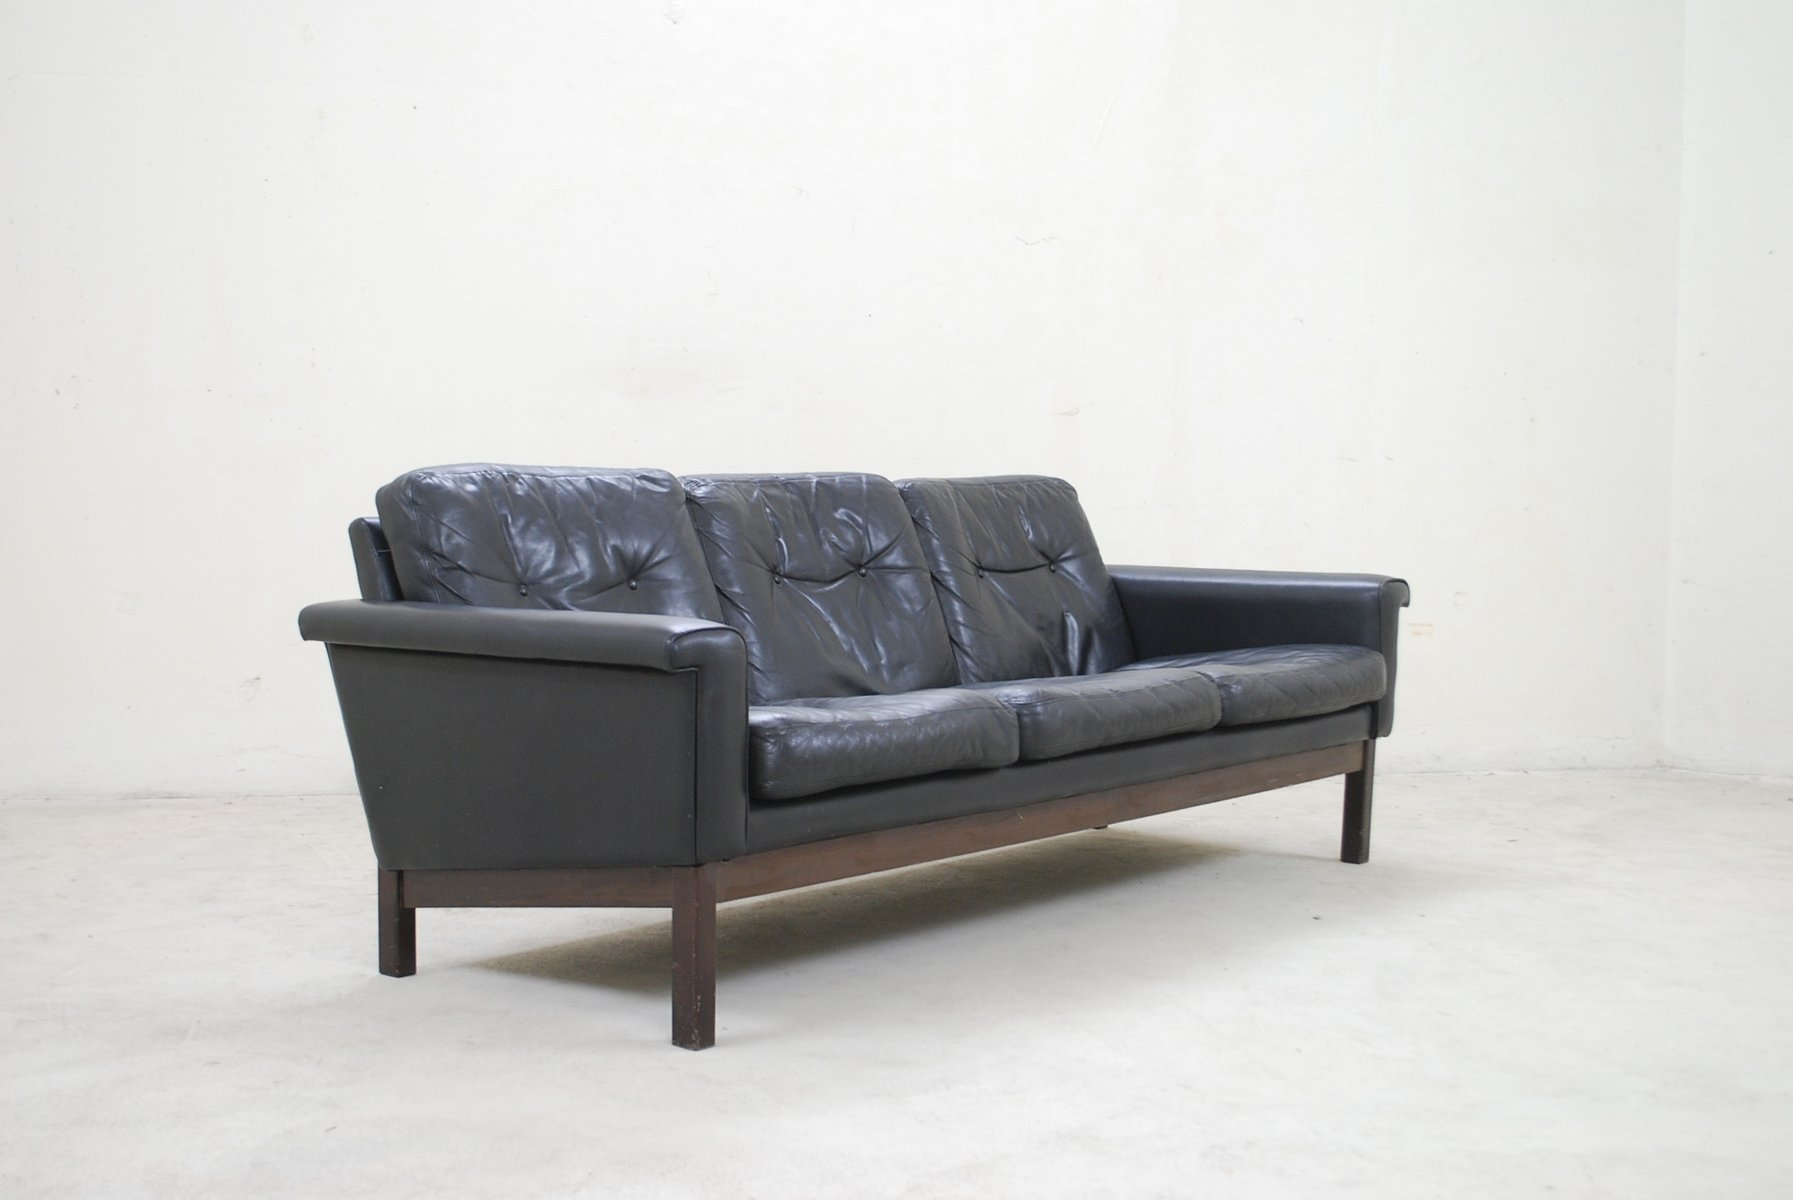 Vintage Black Leather Sofa From Asko